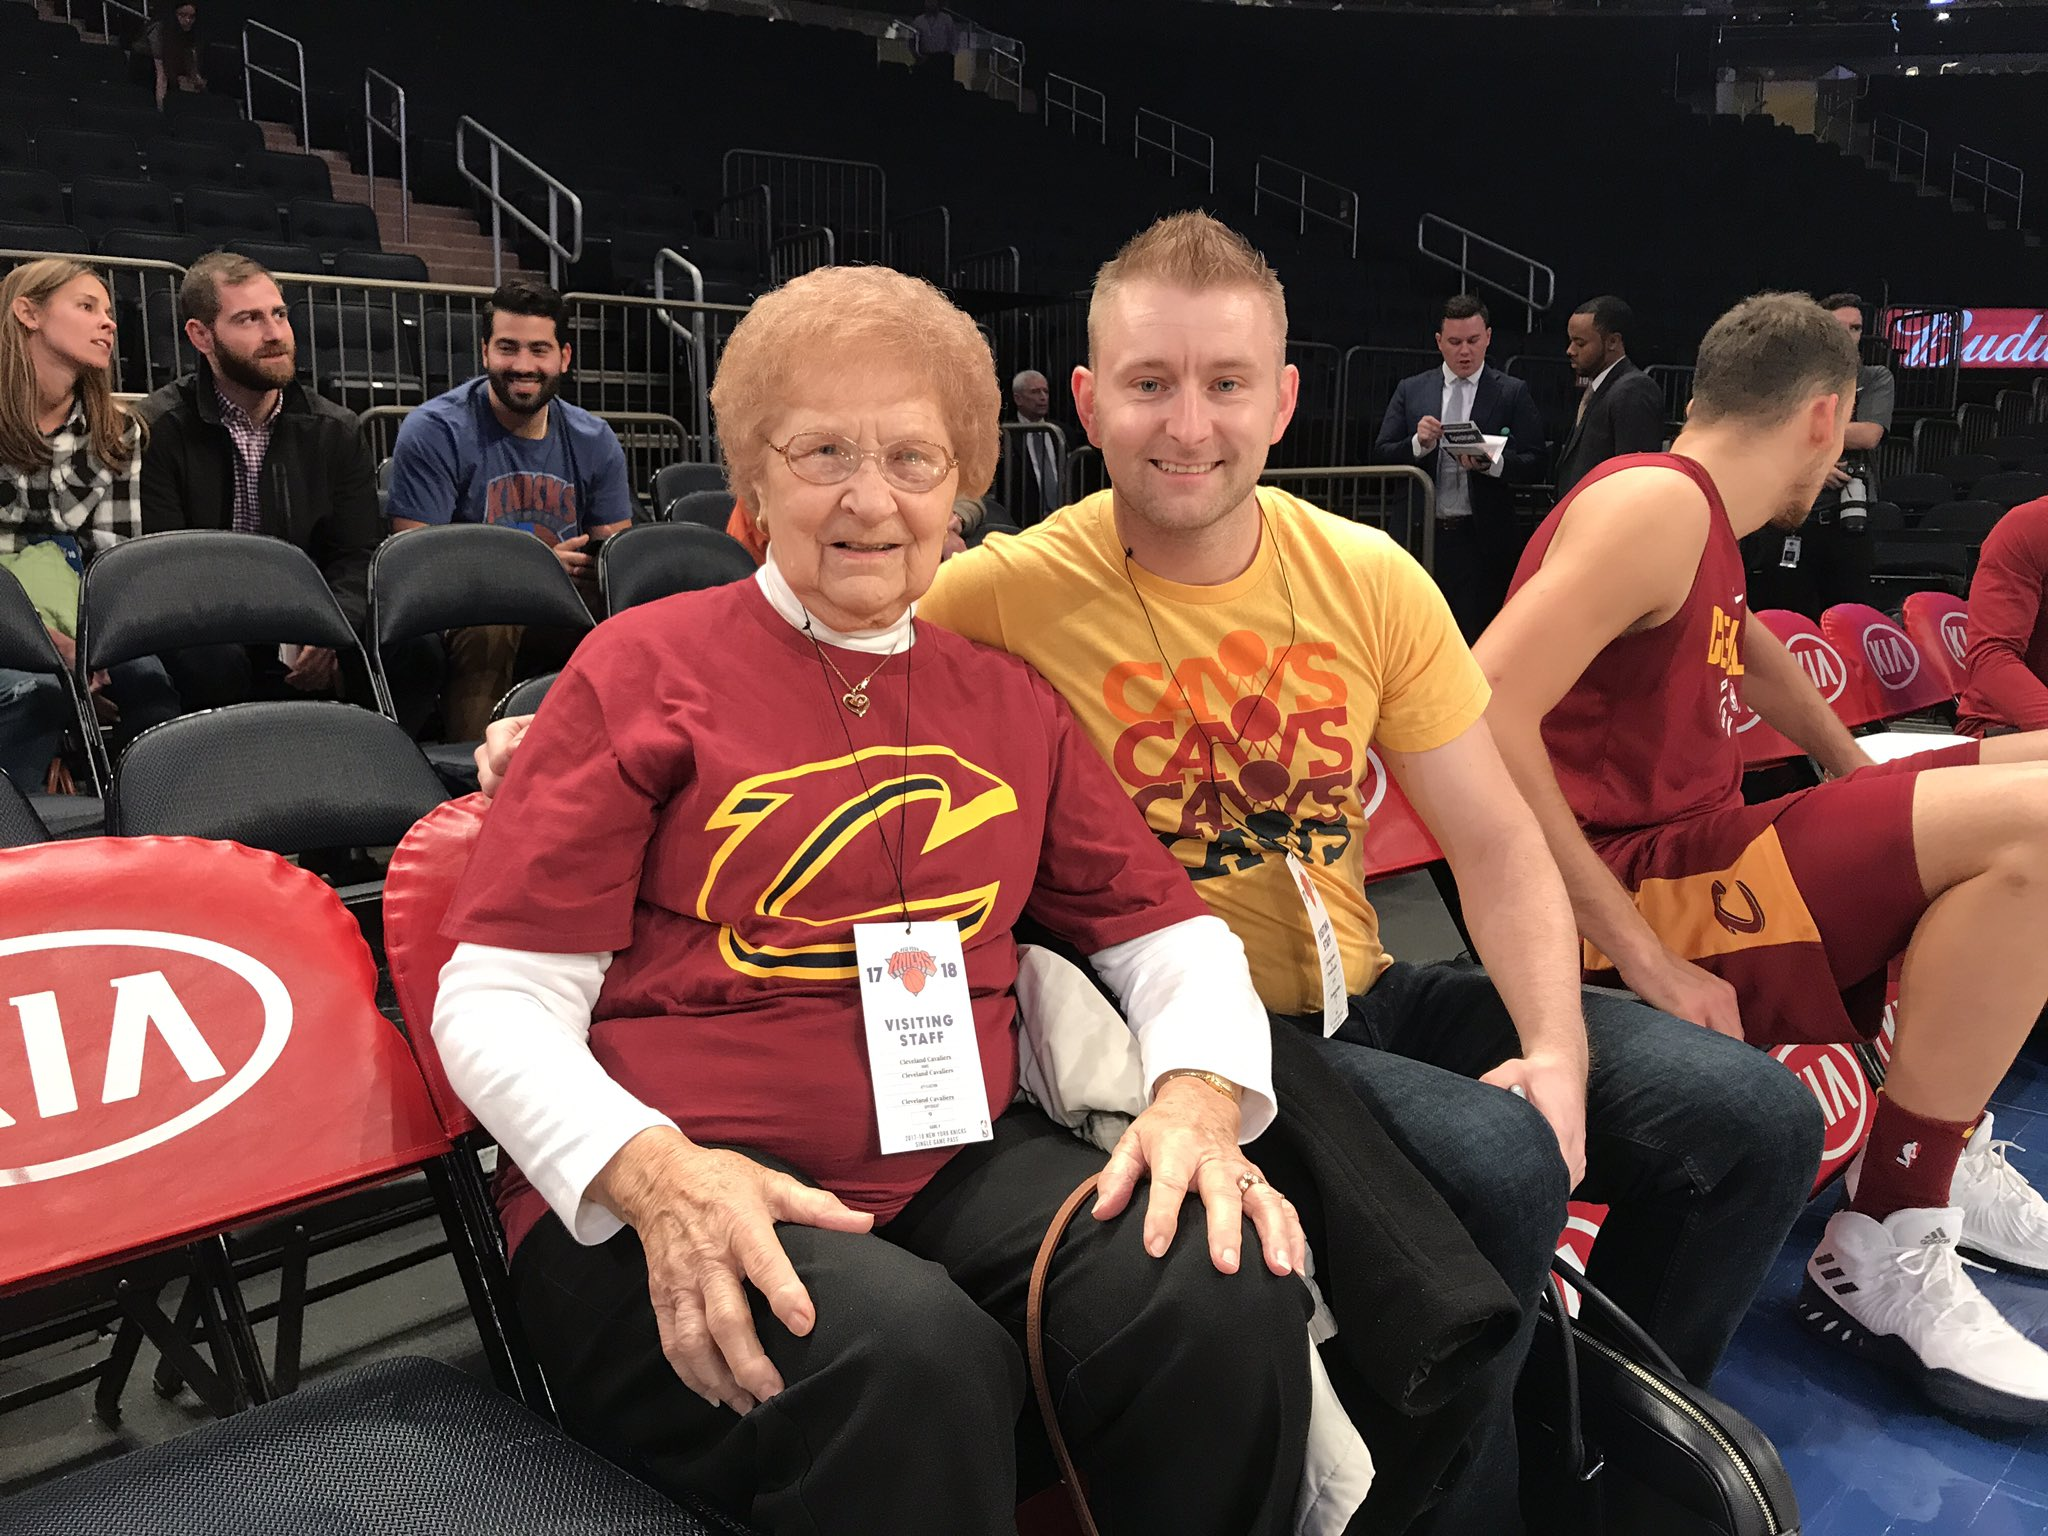 Happy 86th Birthday, Grandma Thatcher! ����  Hope you enjoy #CavsKnicks & the rest of your trip in NYC!   #AllForOne https://t.co/LE4UYMkWa7